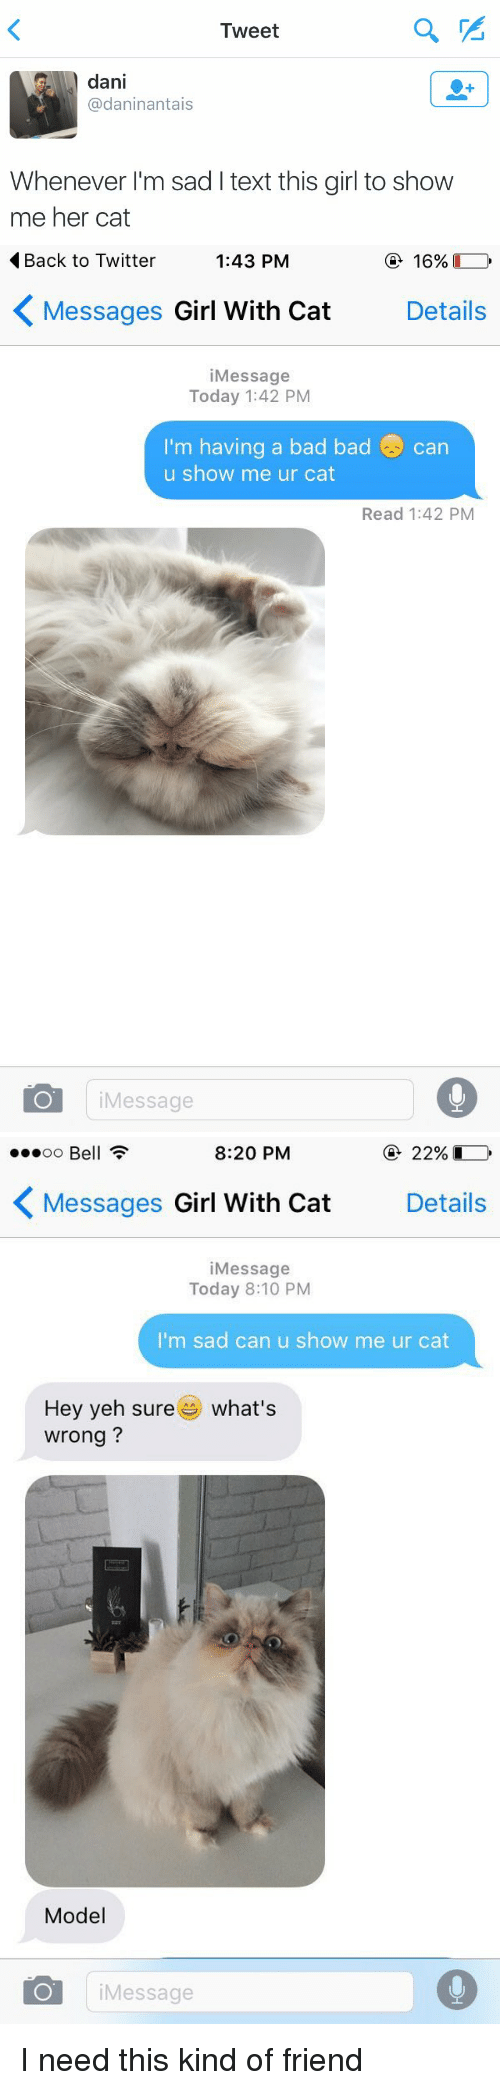 girl with cat: Tweet  dani  @dani nantais  Whenever I'm sad l text this girl to show  me her cat   Back to Twitter  1:43 PM  16%  K Messages Girl With Cat  Details  i Message  Today 1:42 PM  I'm having a bad bad Can  u show me ur cat  Read 1:42 PM  Message   8:20 PM  22%  oo Be  K Messages  Girl With Cat  Details  i Message  Today 8:10 PM  I'm sad can u show me ur cat  Hey yeh sure  es what's  wrong?  Model  Message I need this kind of friend